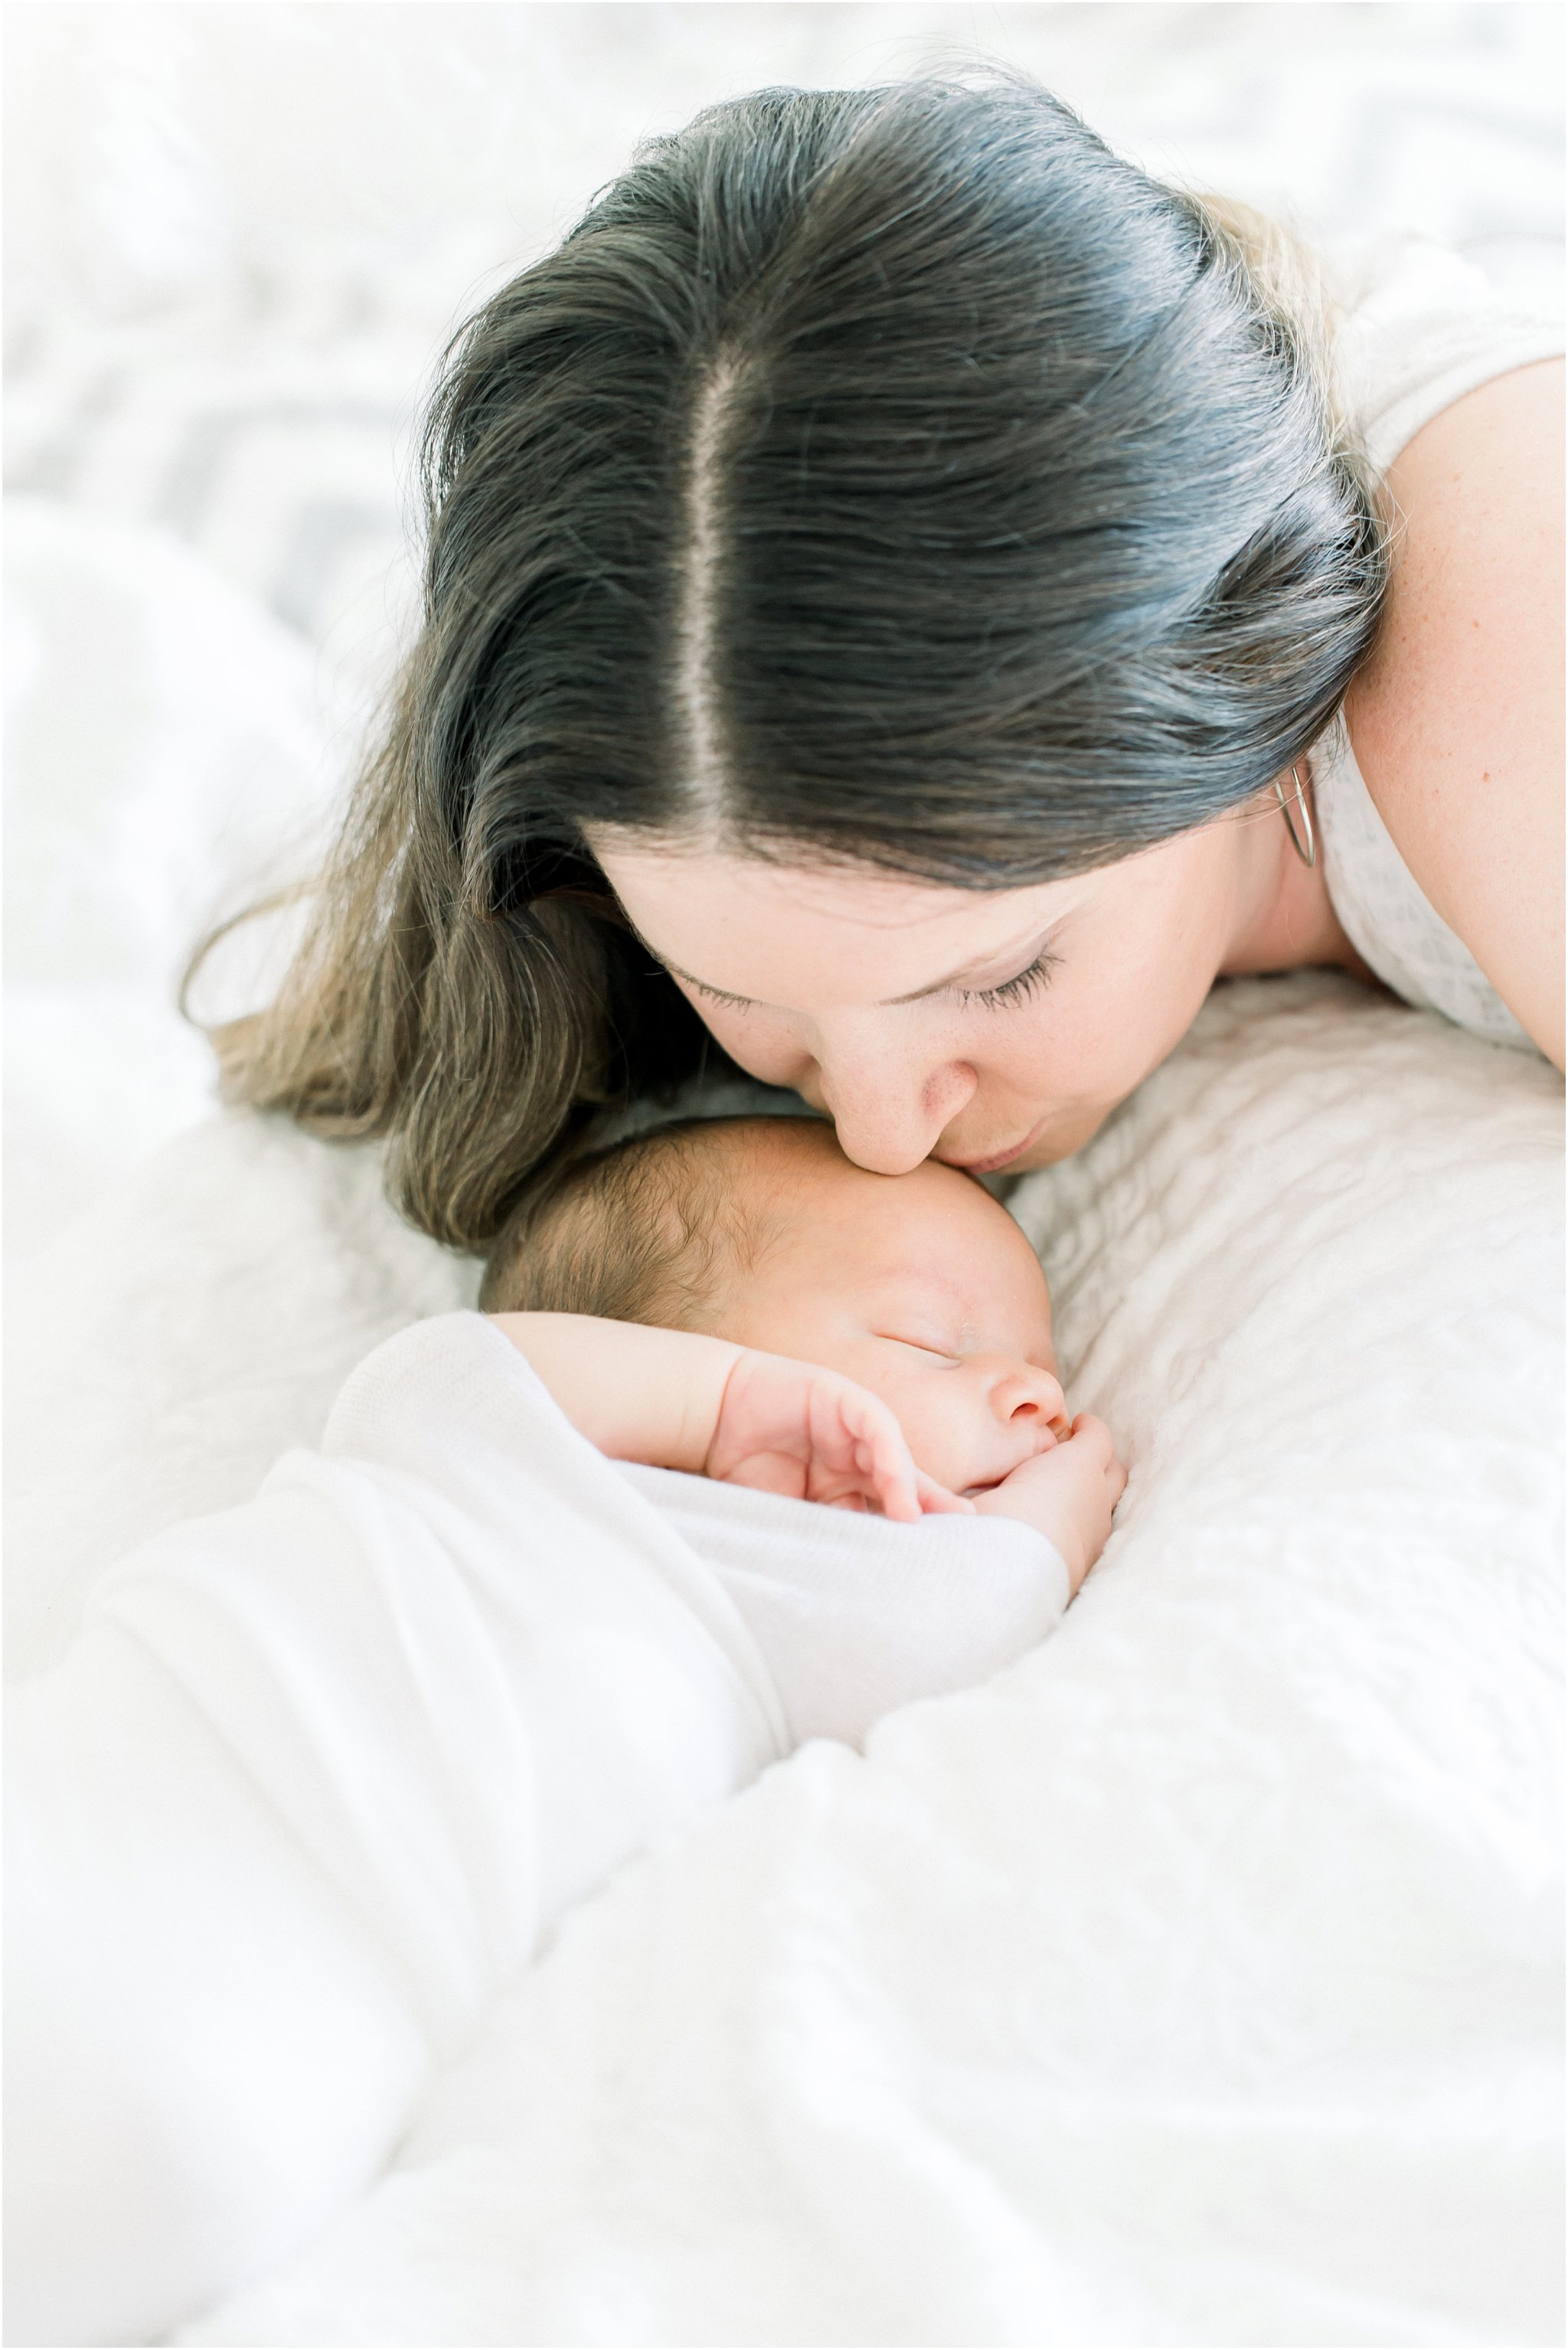 Aliso+Viejo+Newborn+photographer